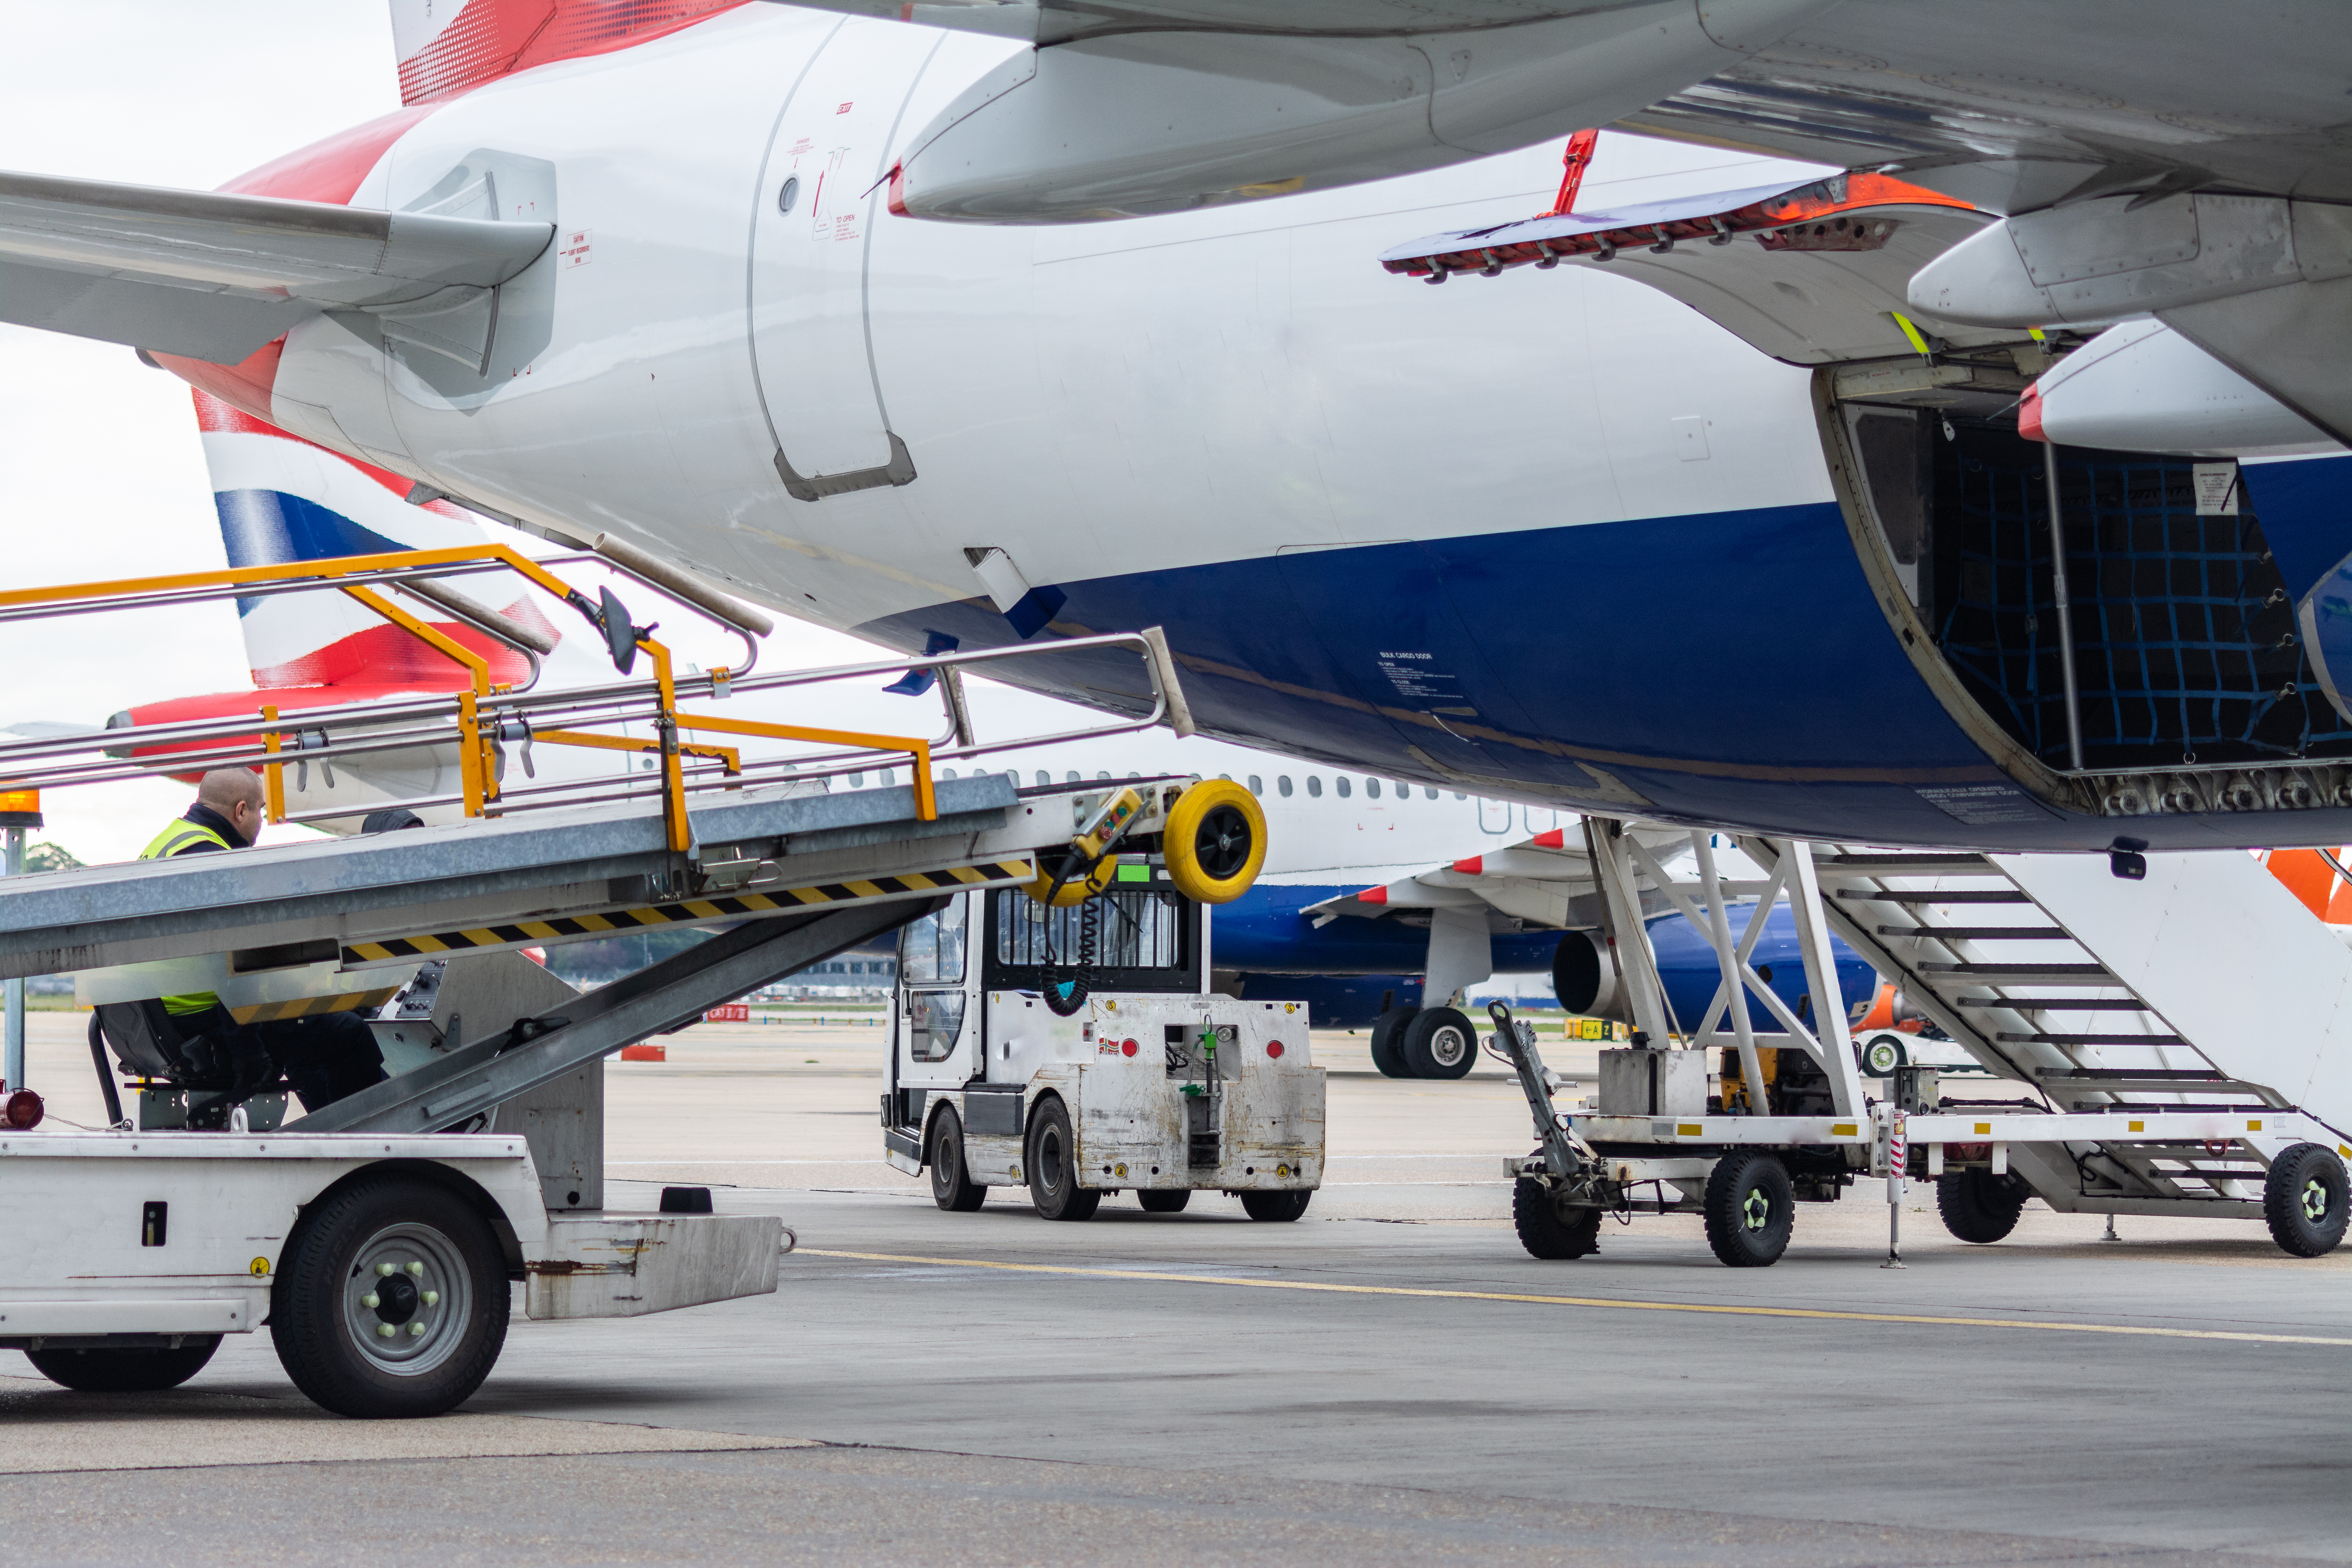 Why conduct practical driving assessments before issuing apron ADPs?